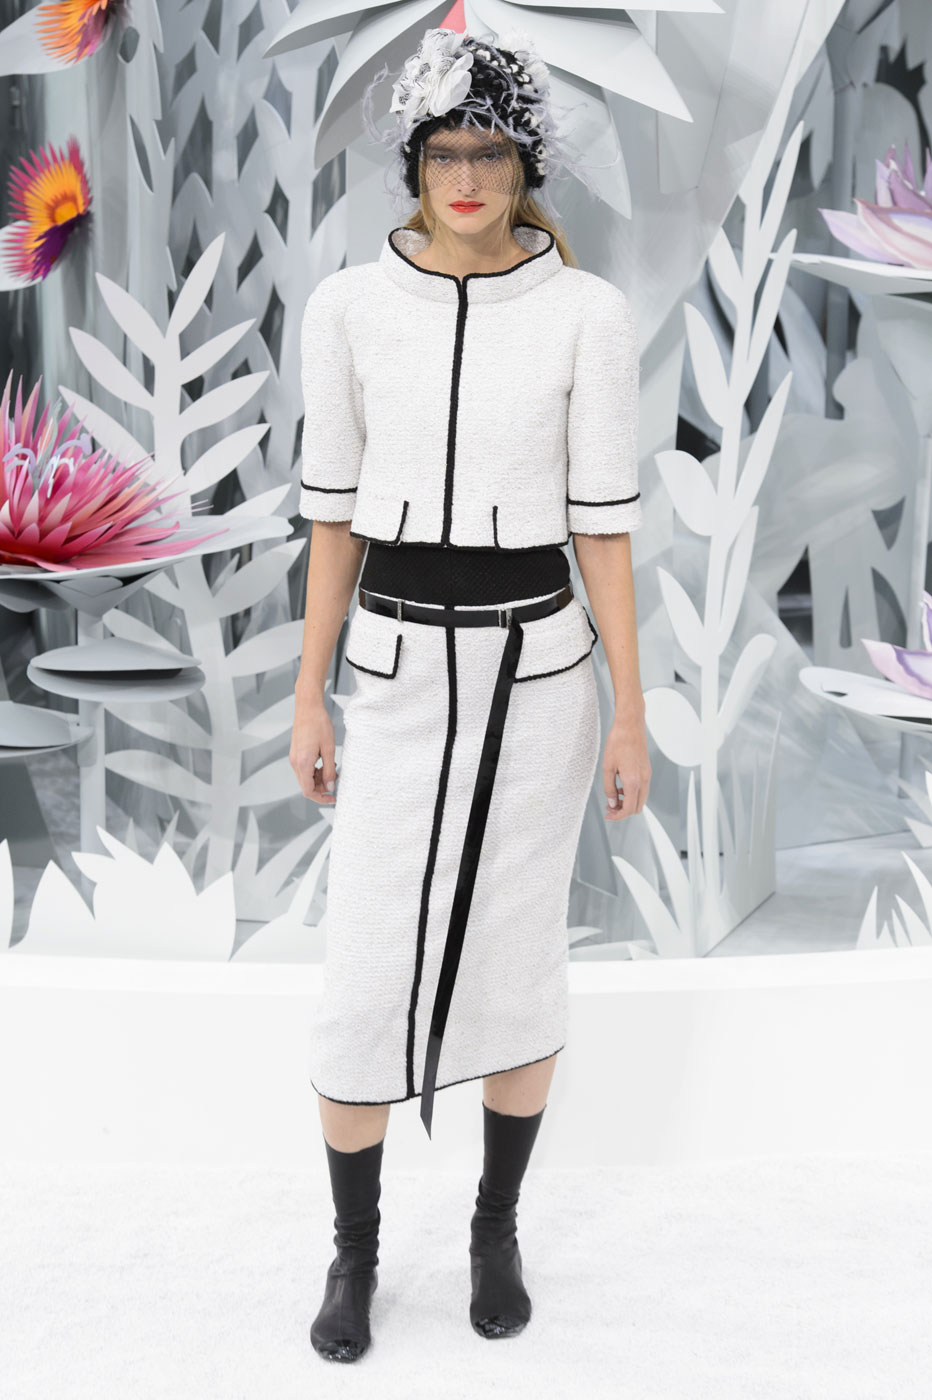 Chanel-fashion-runway-show-haute-couture-paris-spring-summer-2015-the-impression-030